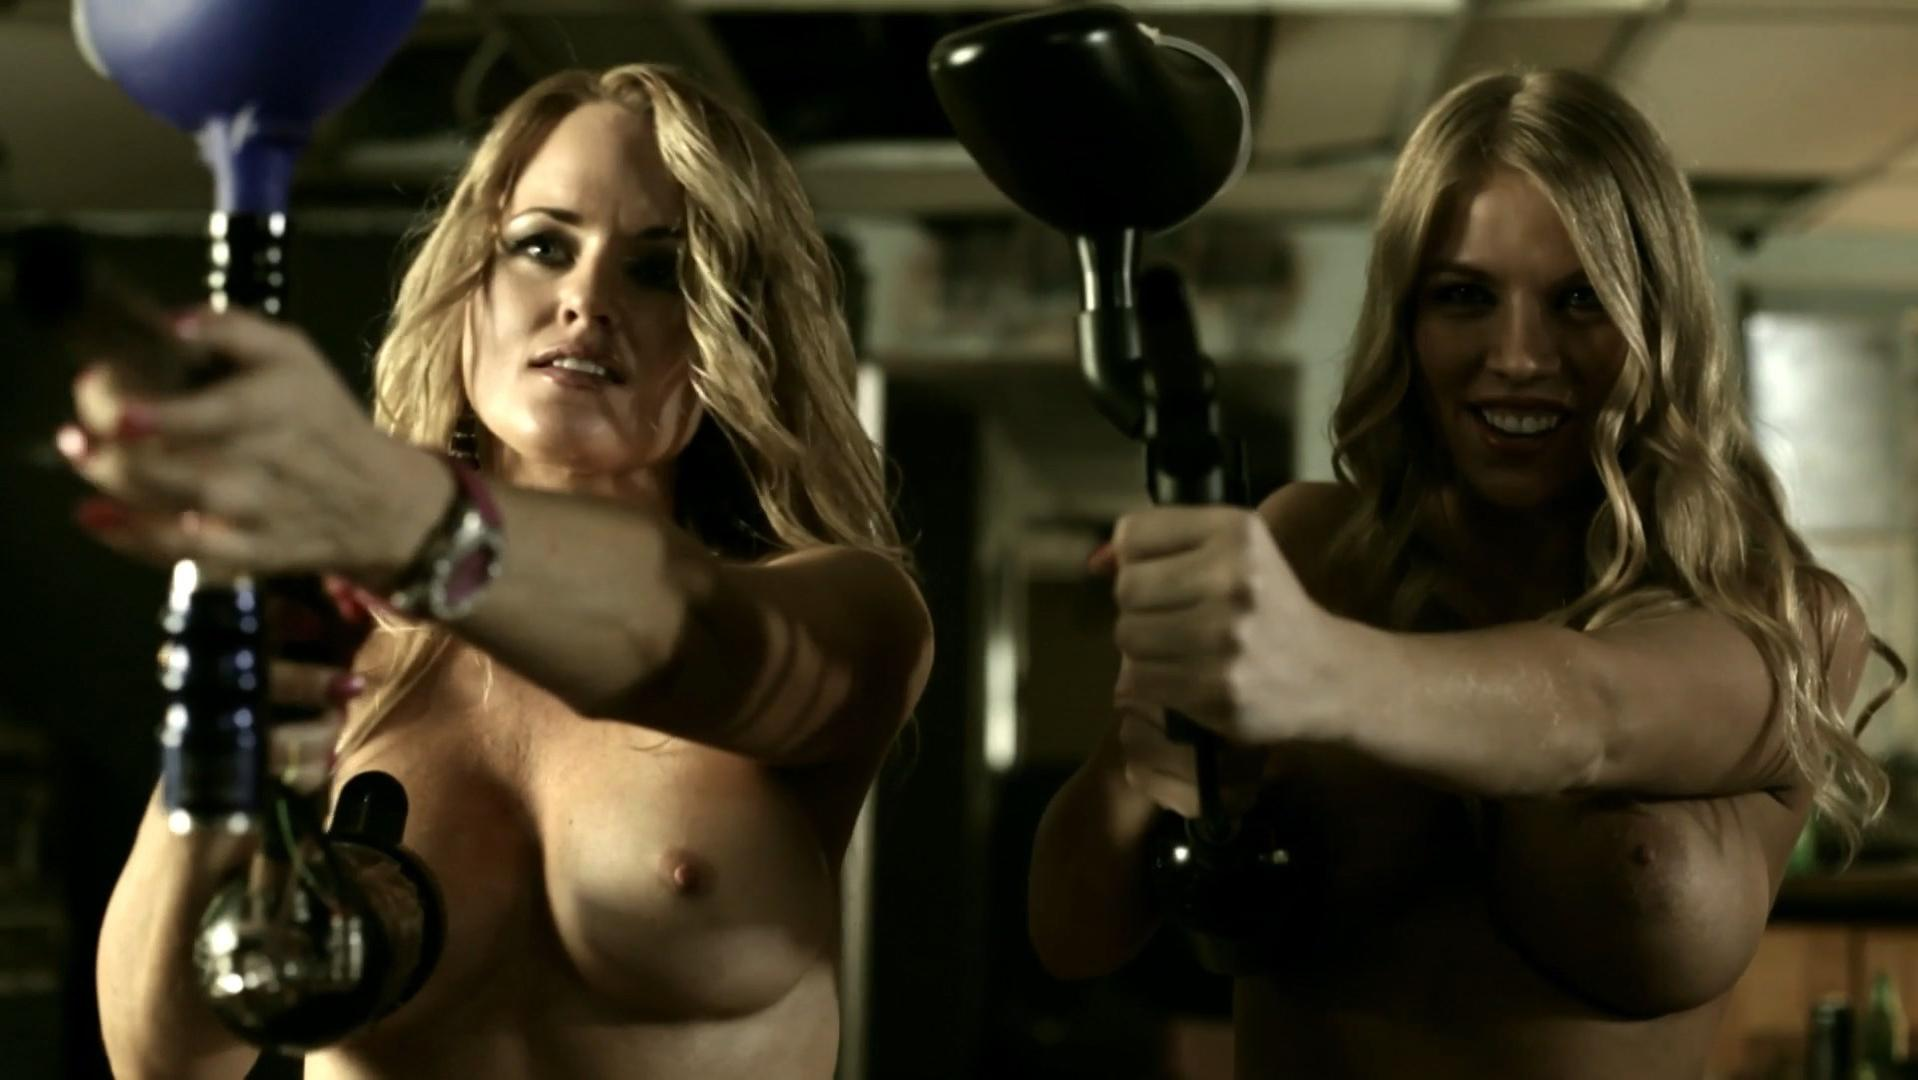 Ashley Walsh nude, Aimee Bello nude, Deanna Meske nude - Hazard Jack (2014)